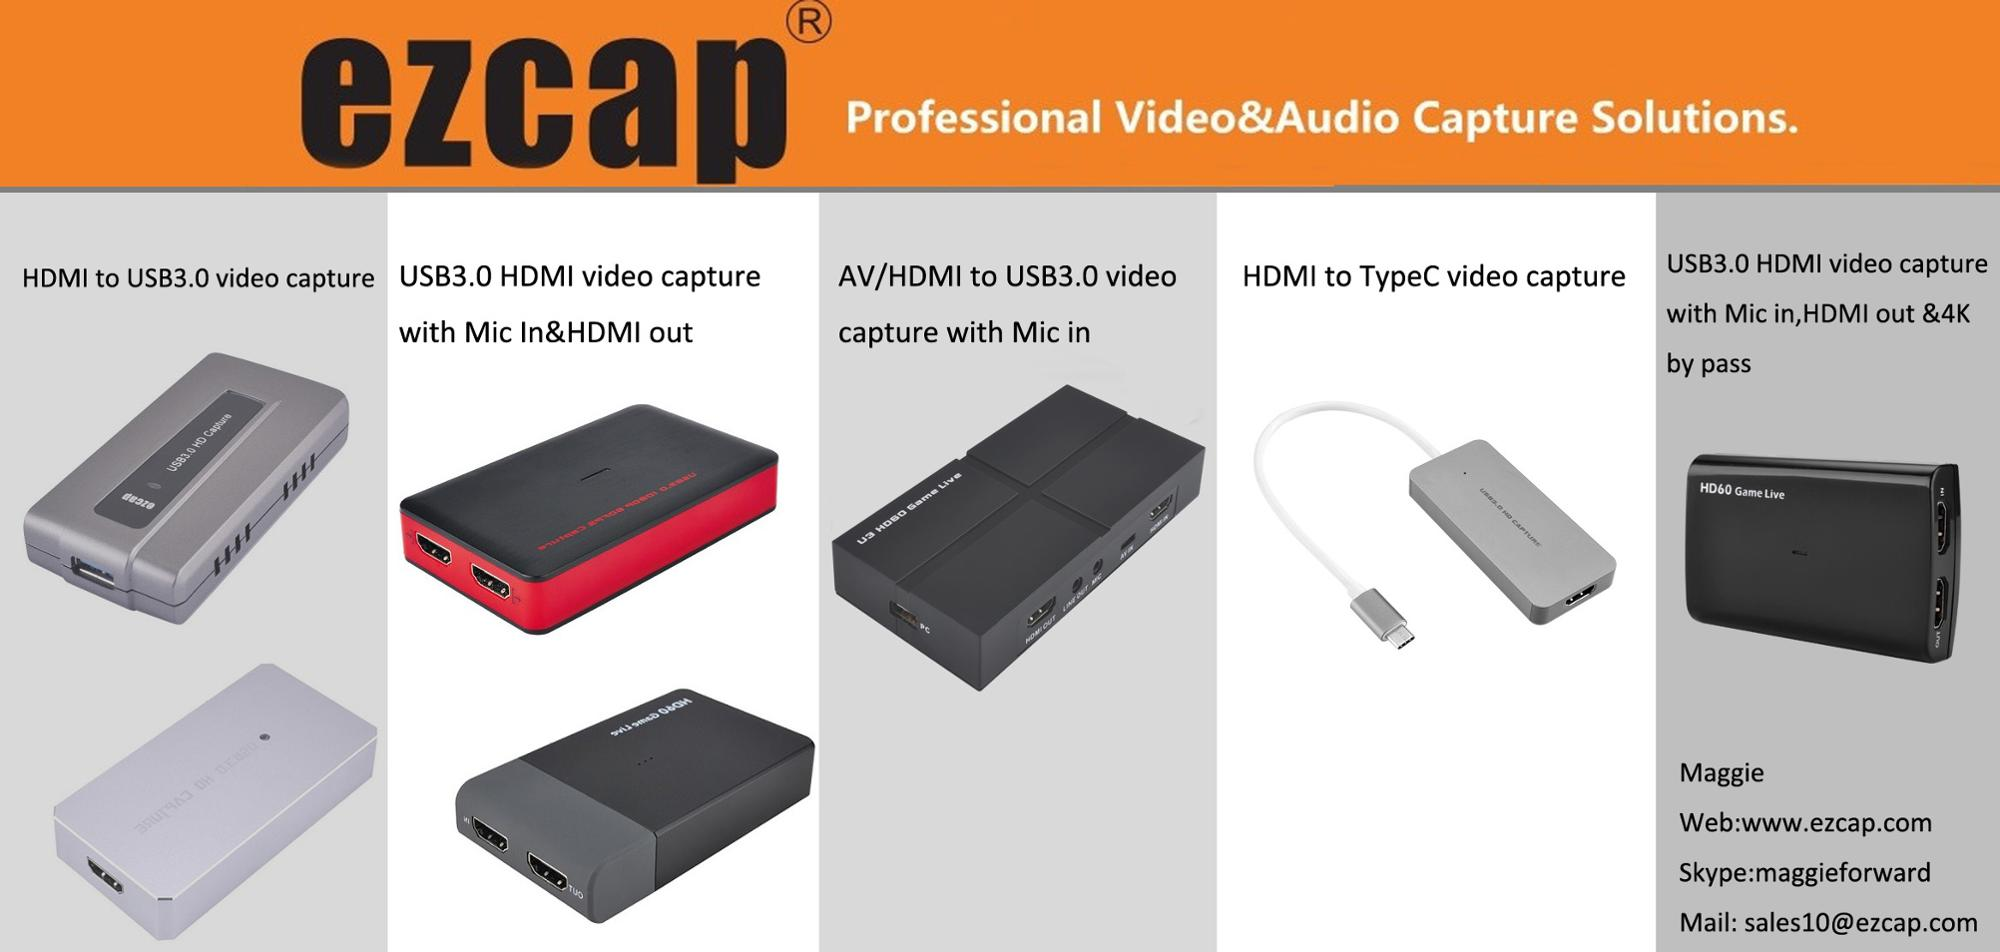 Hot on Amazon HDMI to TypeC USBC UVC Capture card dongle 1080P Video recorder support Android phone live streaming ezcap265C